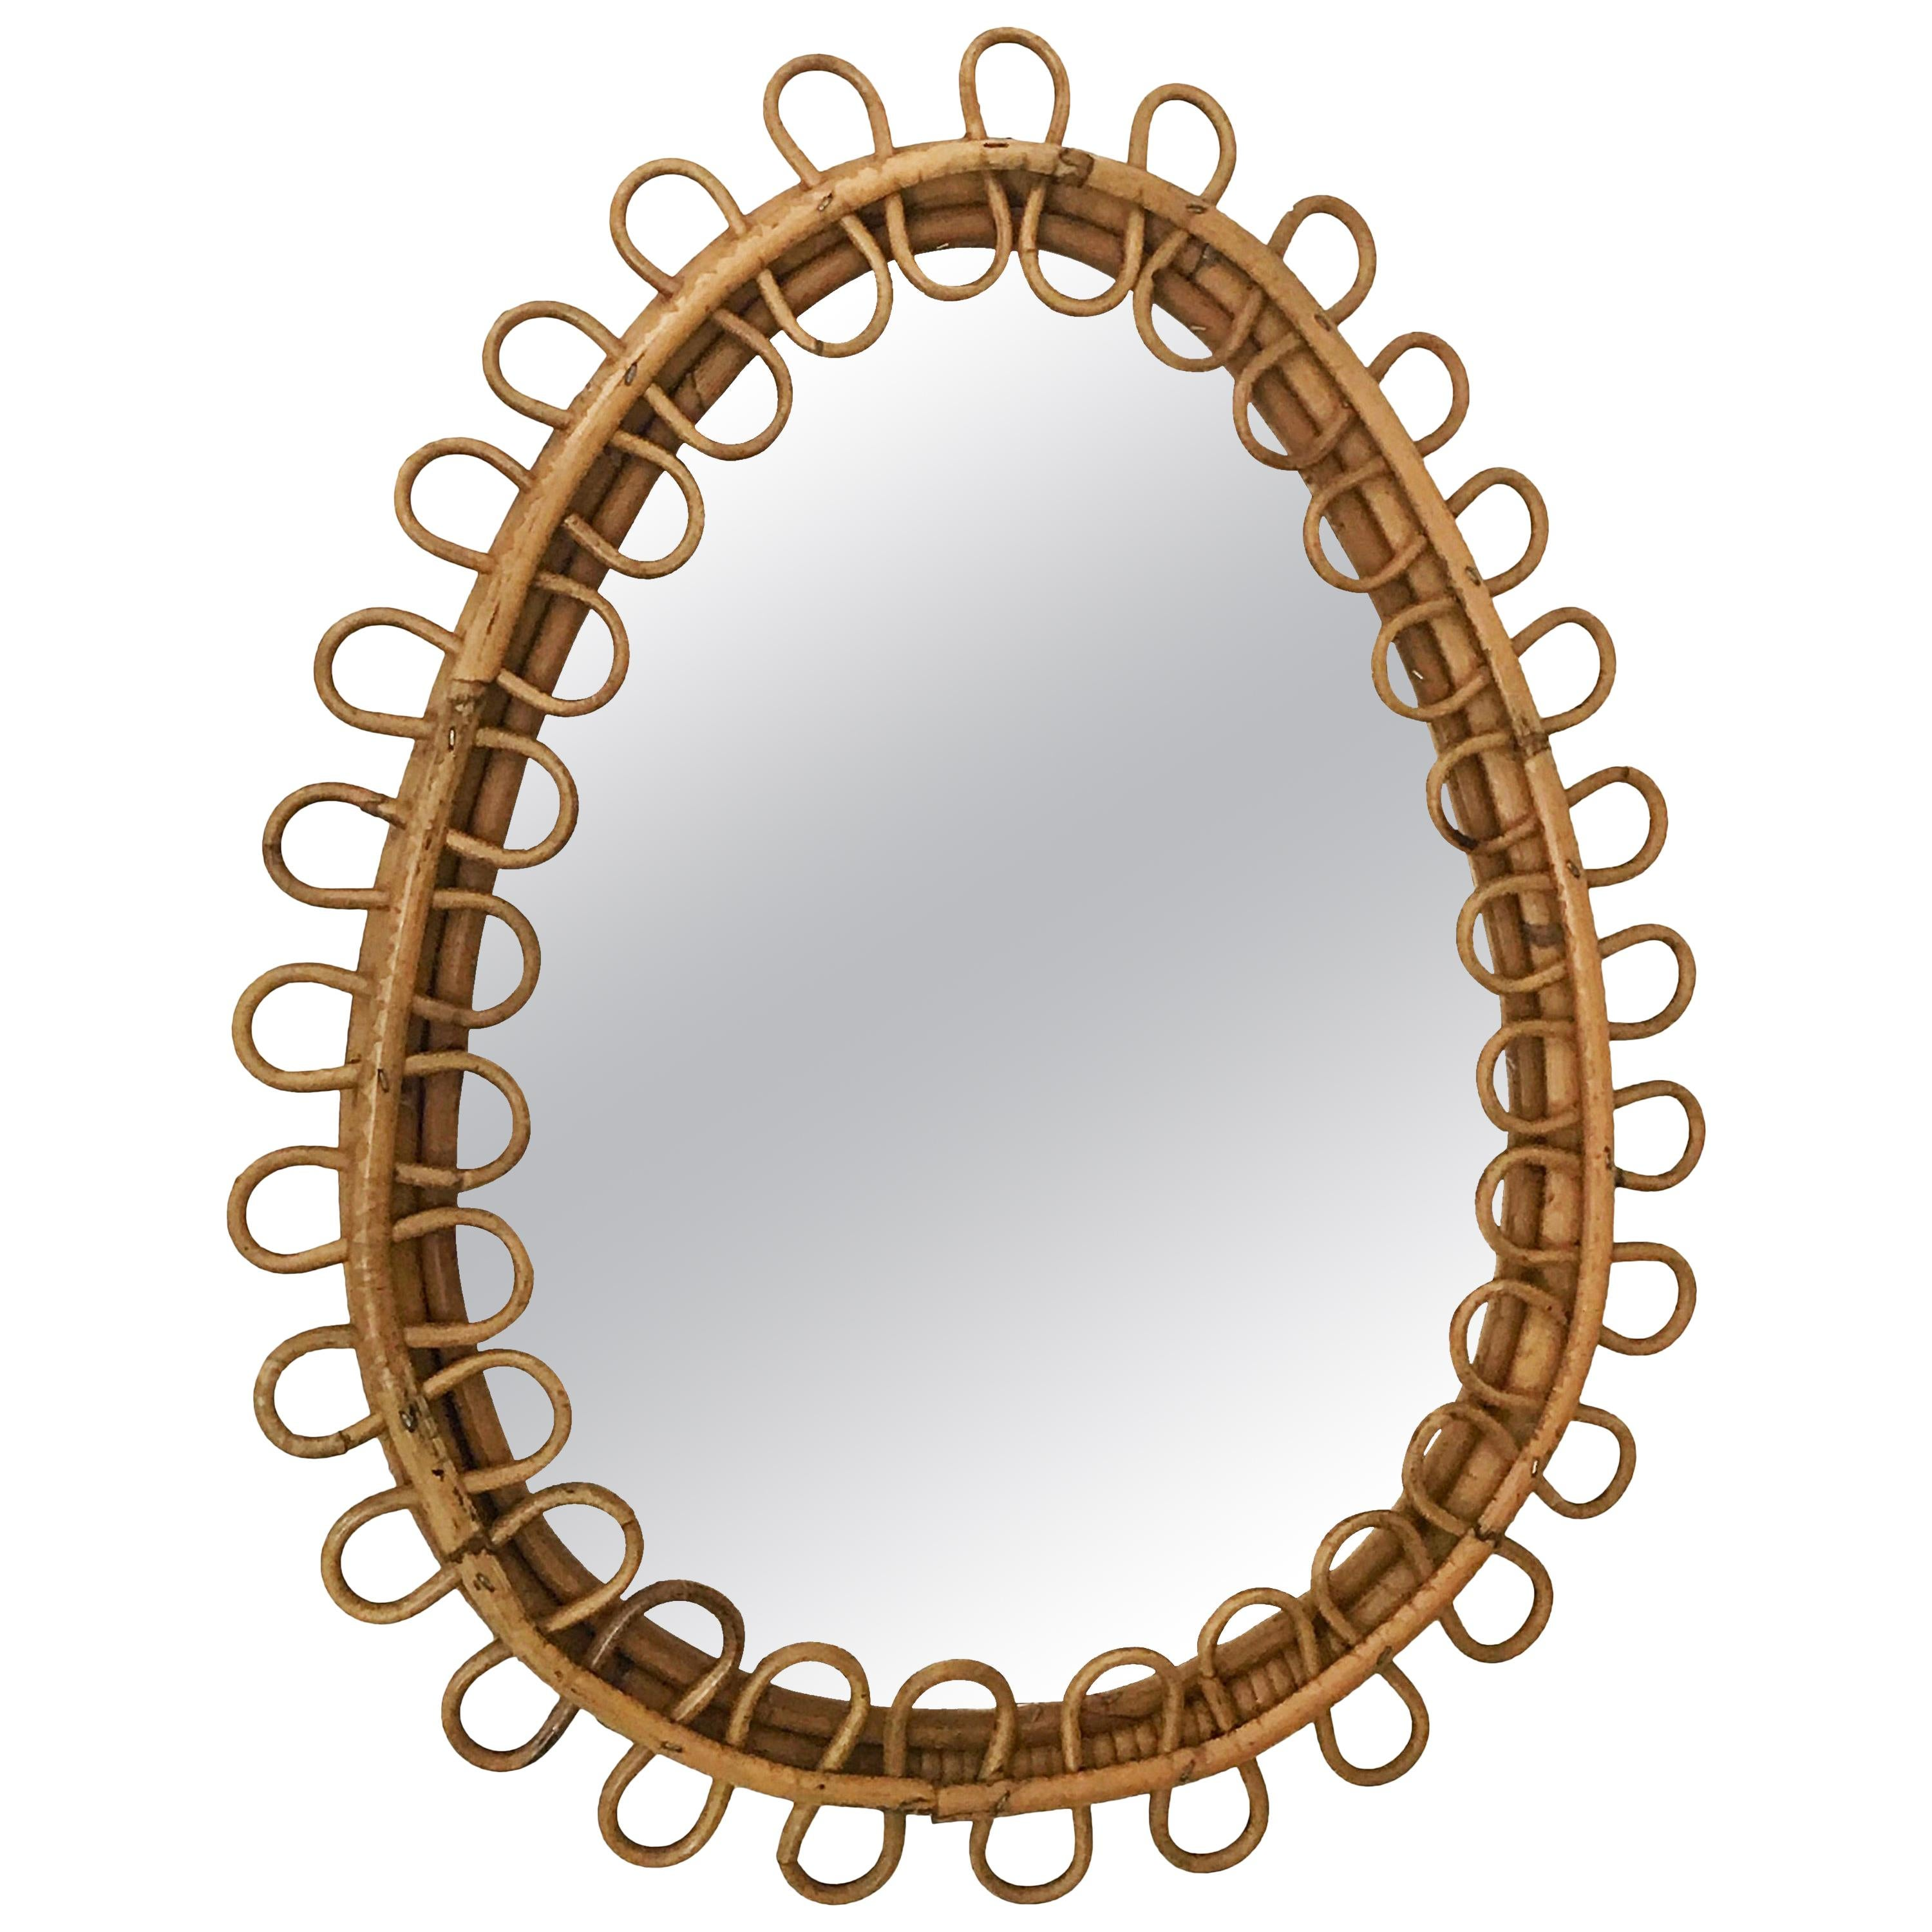 Midcentury French Riviera Oval Bamboo and Rattan Italian Wall Mirror, 1960s